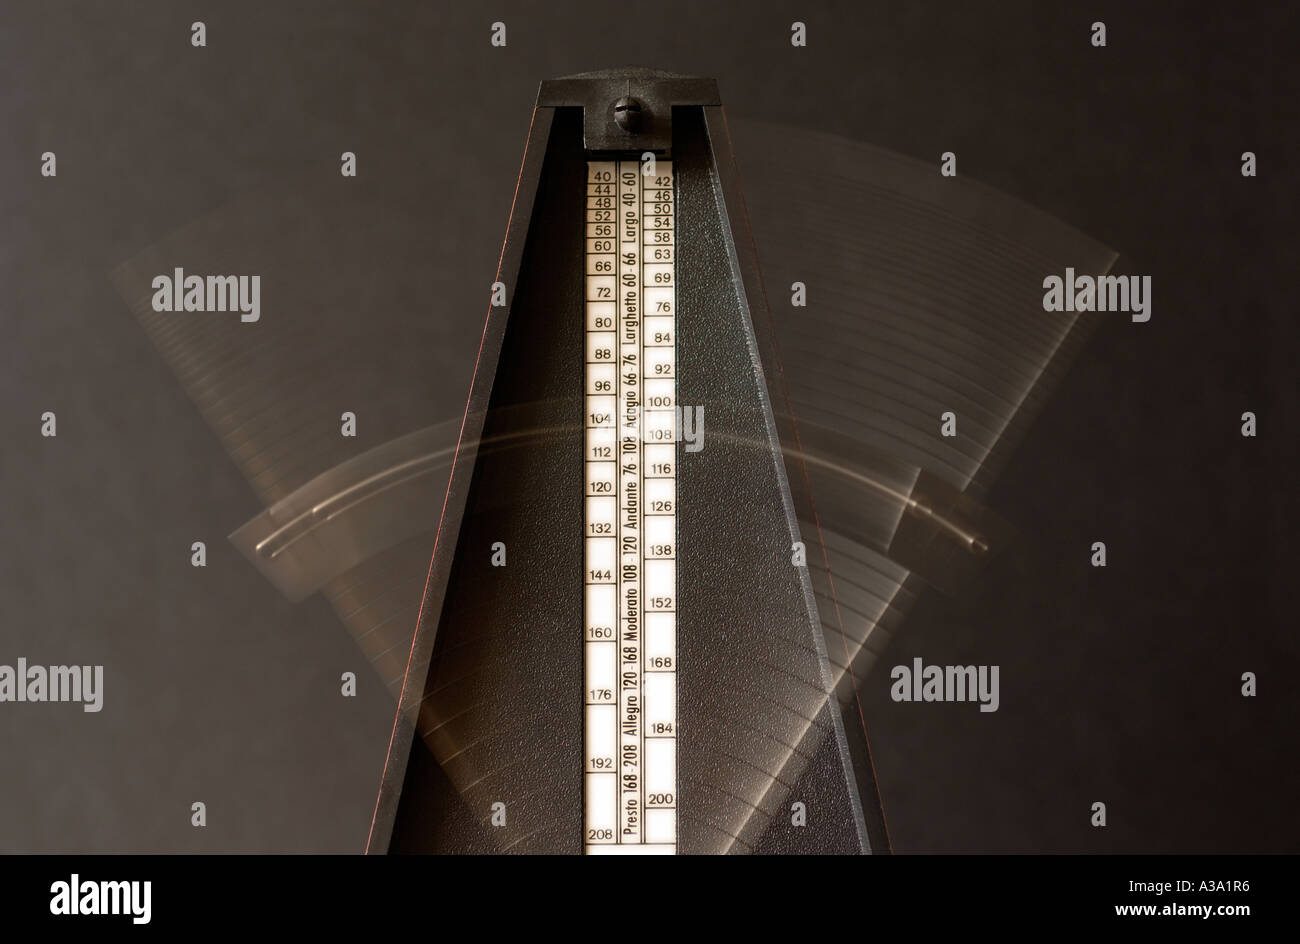 Blurred moving arm on a musicians mechanical metronome. Credit: Malcolm Park/Alamy. - Stock Image